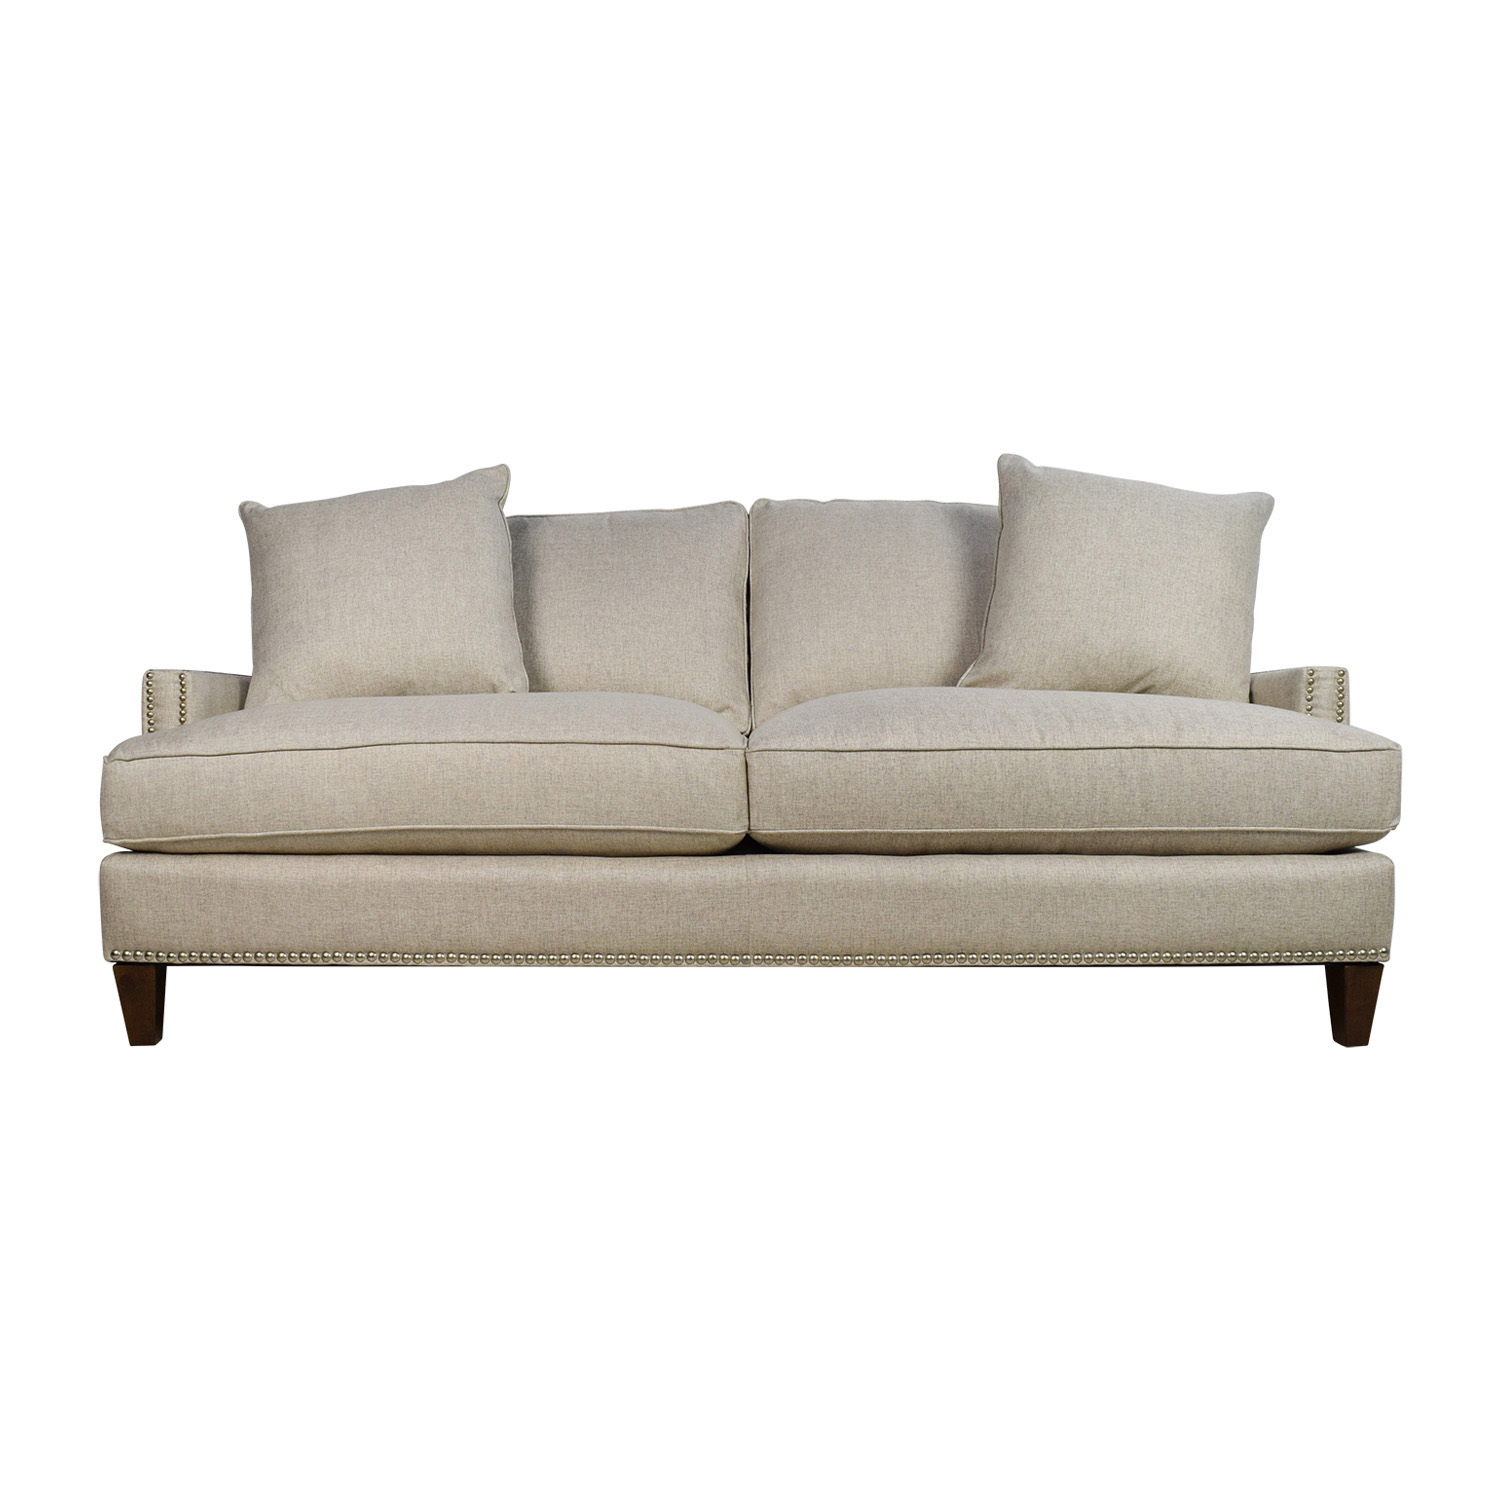 Jennifer convertibles sofa jennifer convertible sofa beds for Sectional sofa jennifer convertible